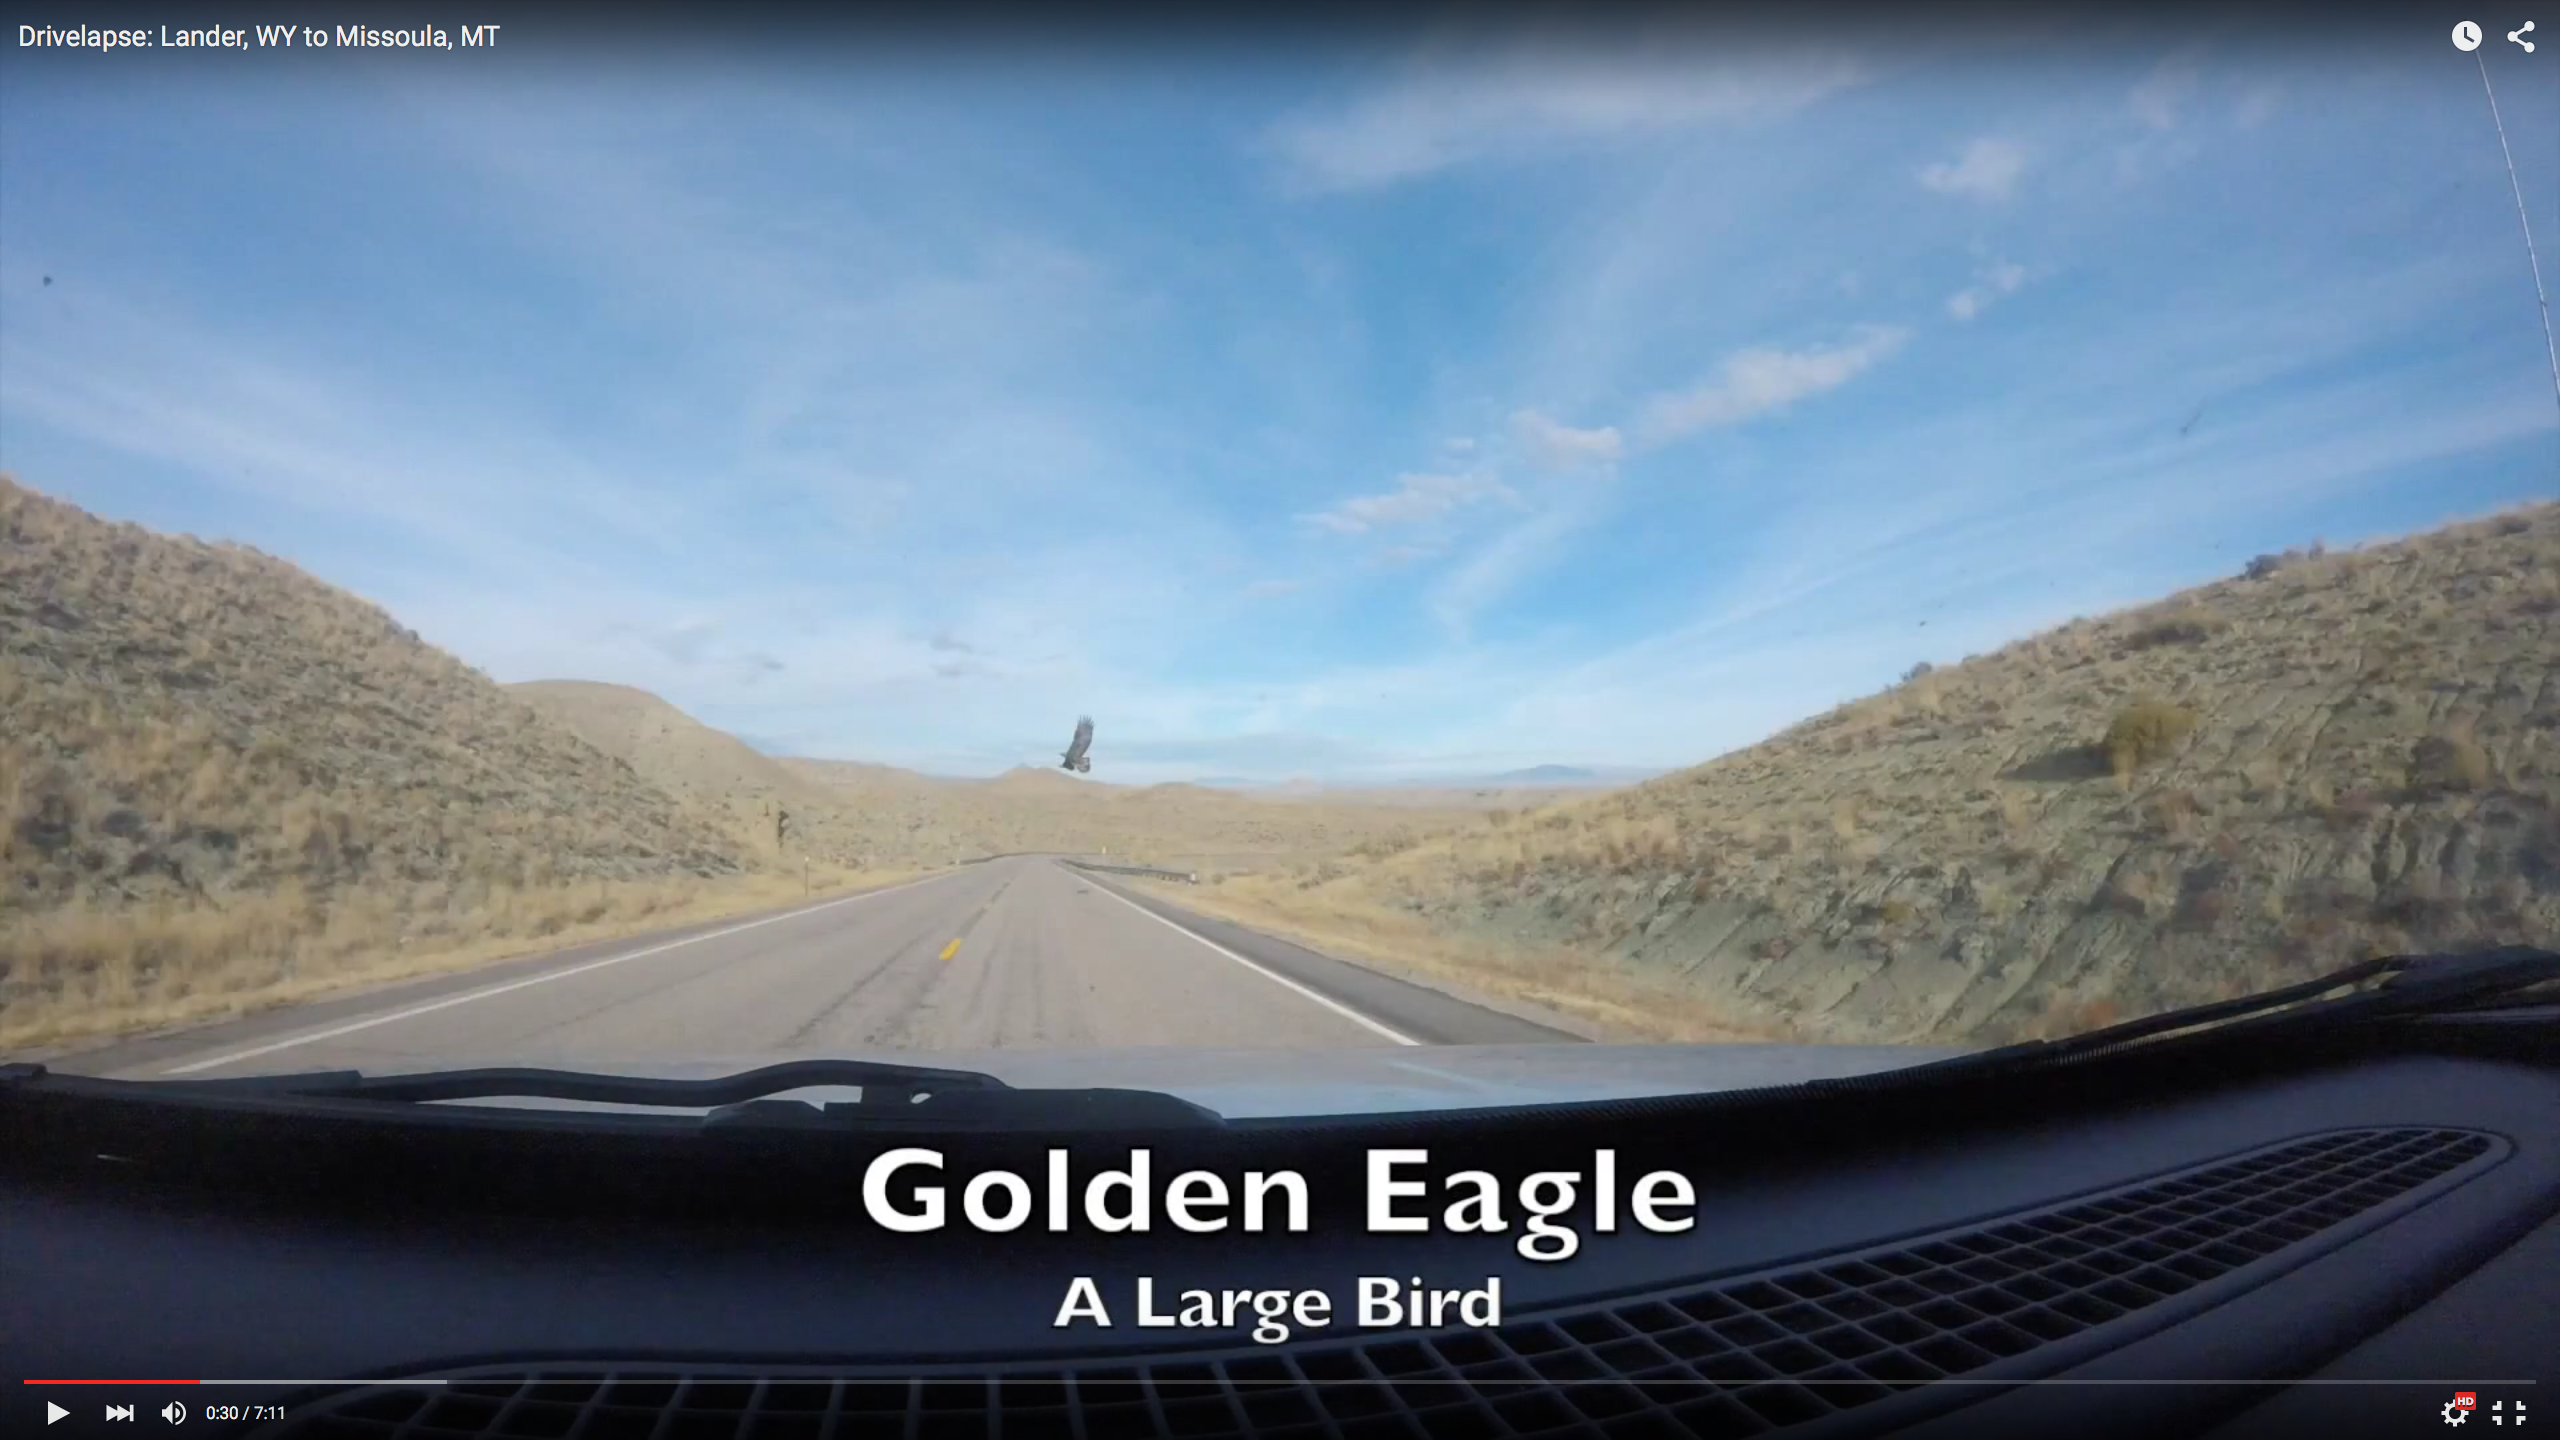 6 Minute Drivelapse from Lander, Wy to Missoula, Mt